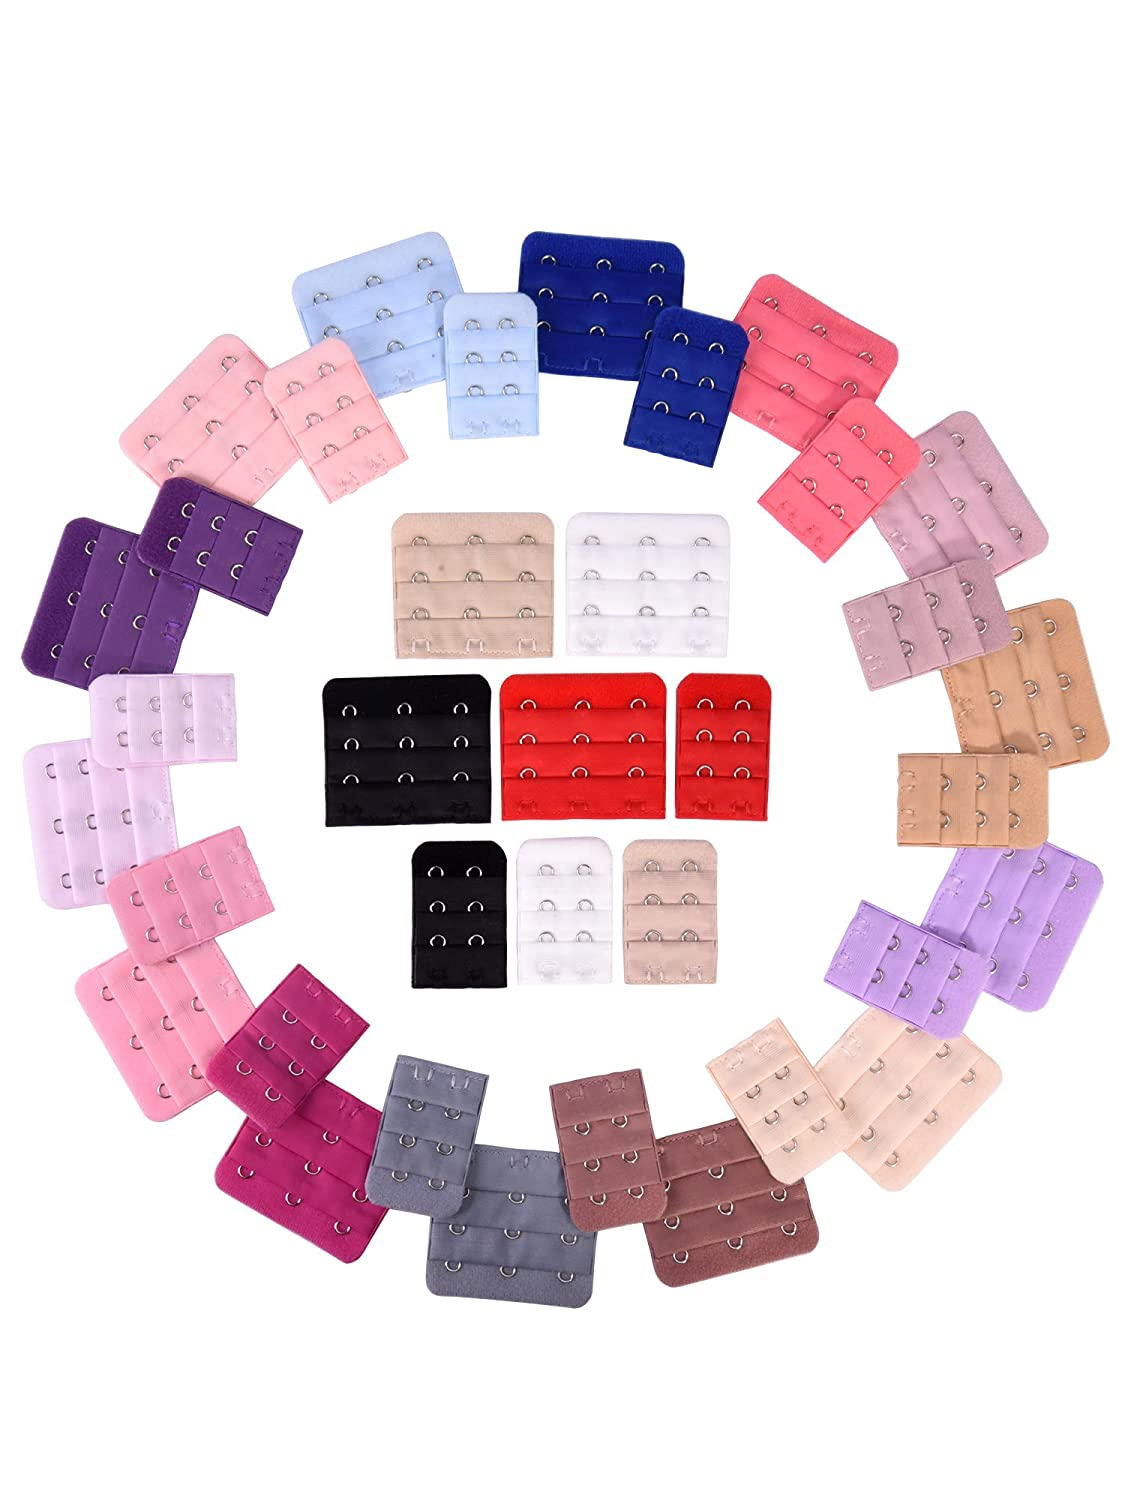 eBoot 36 Pieces Bra Extenders Brassiere Extension Hooks, 2 and 3 Hooks, 18 Color